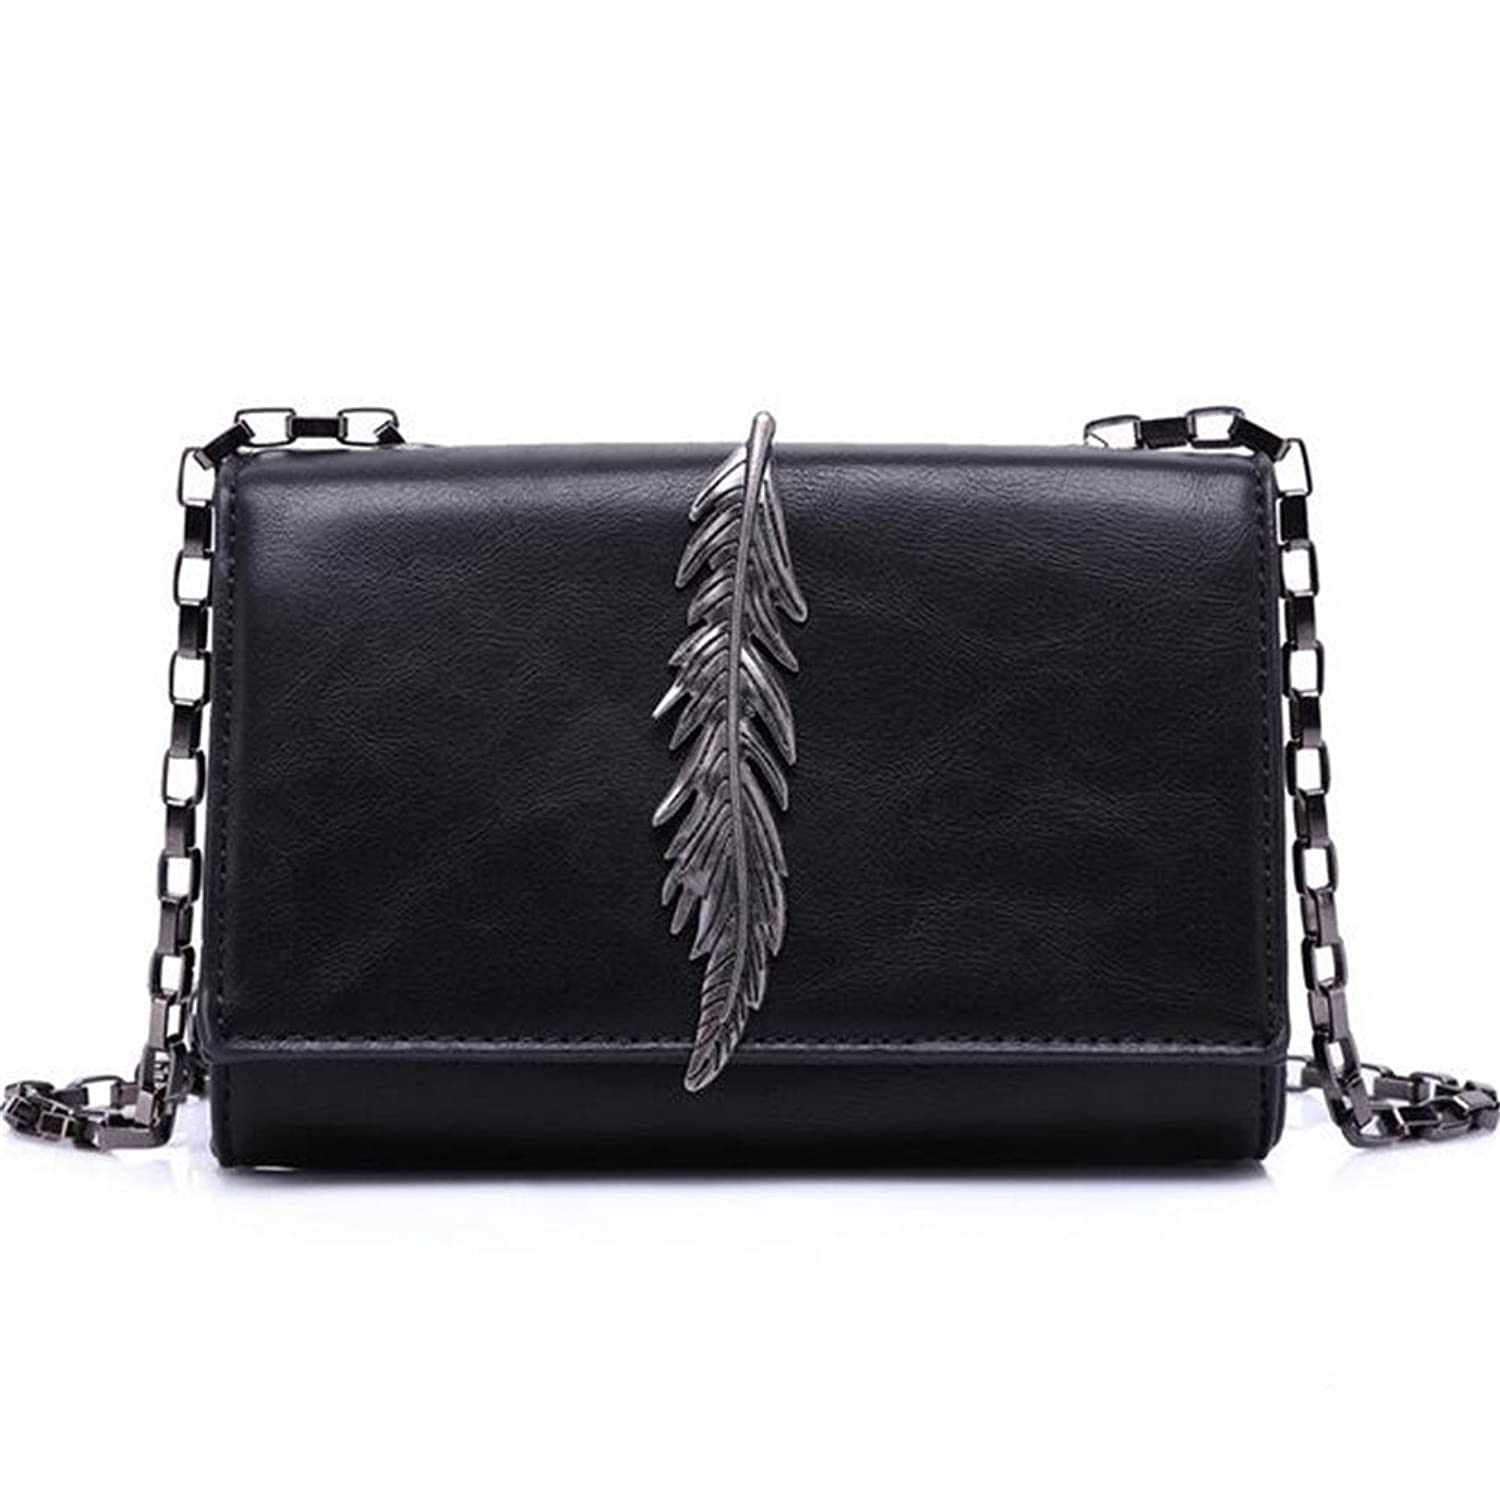 G.T.D 2016 New Leaves Decorative Handbags Wild Shoulder Messenger Bag European and American Retro Chain Clutch Bag Small Square